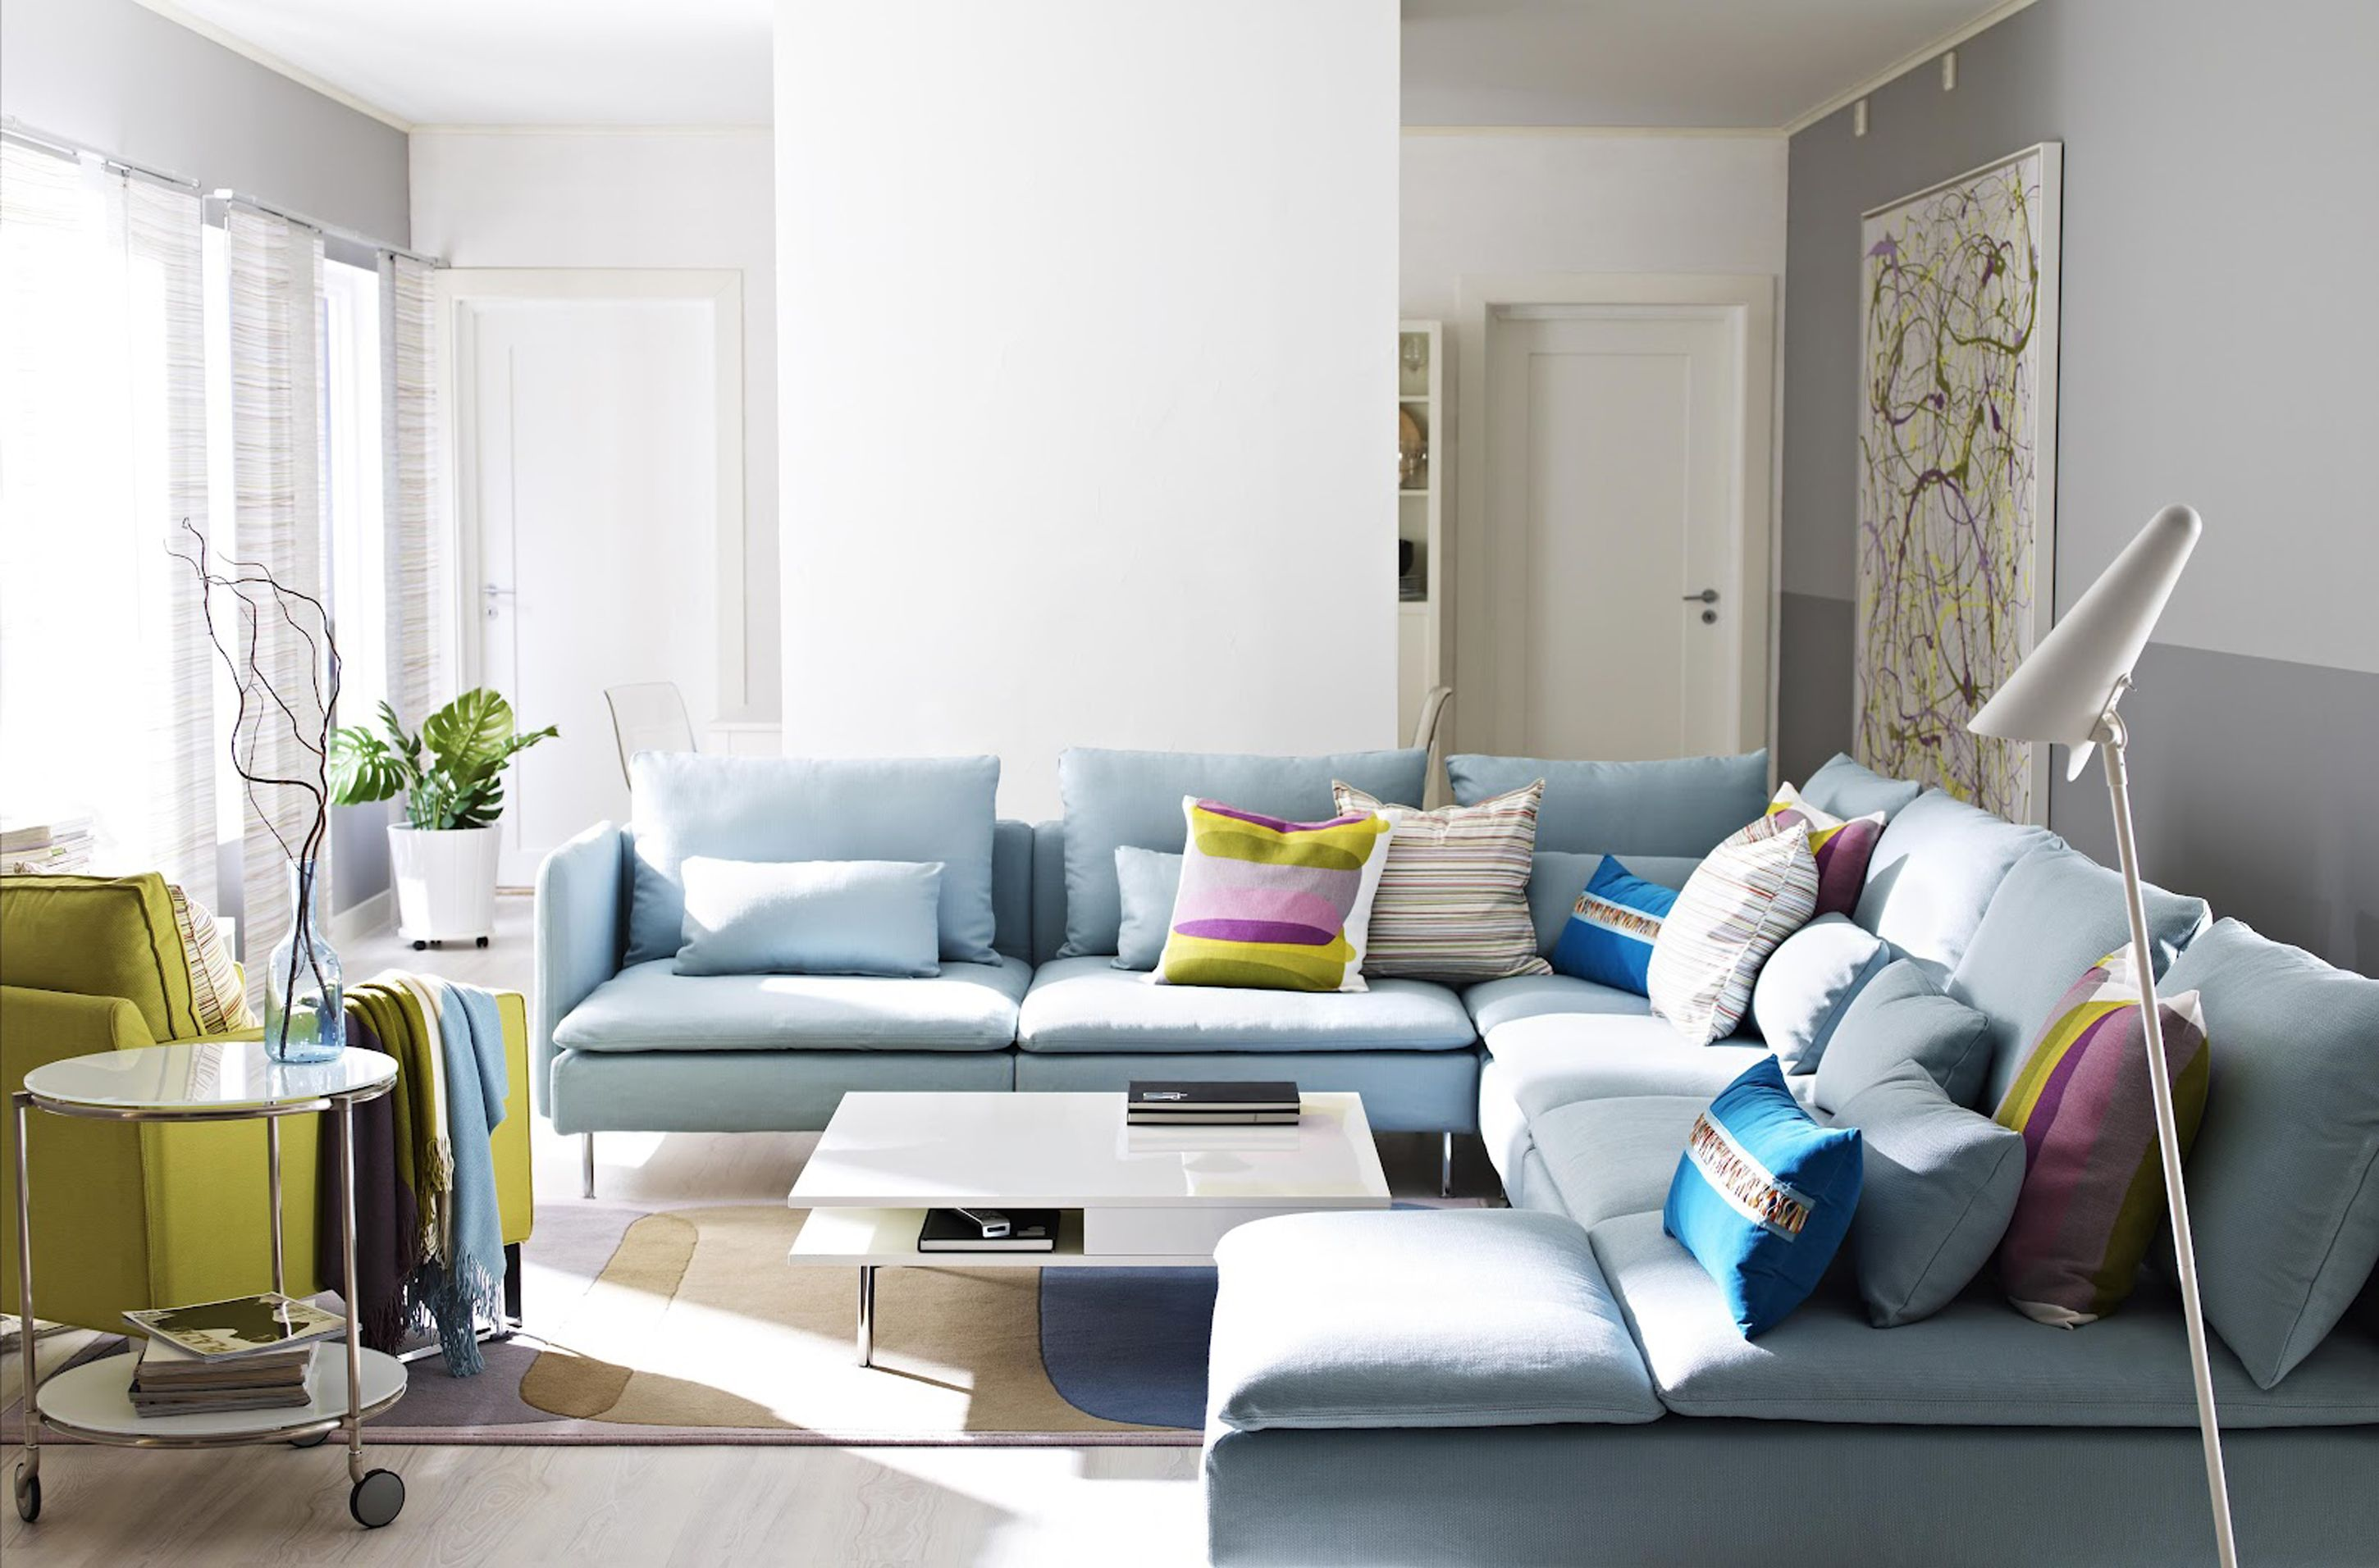 light-blue-sofa-living-room-to-couch-58eaf047ac88d.jpg 2,900×1,912 ...